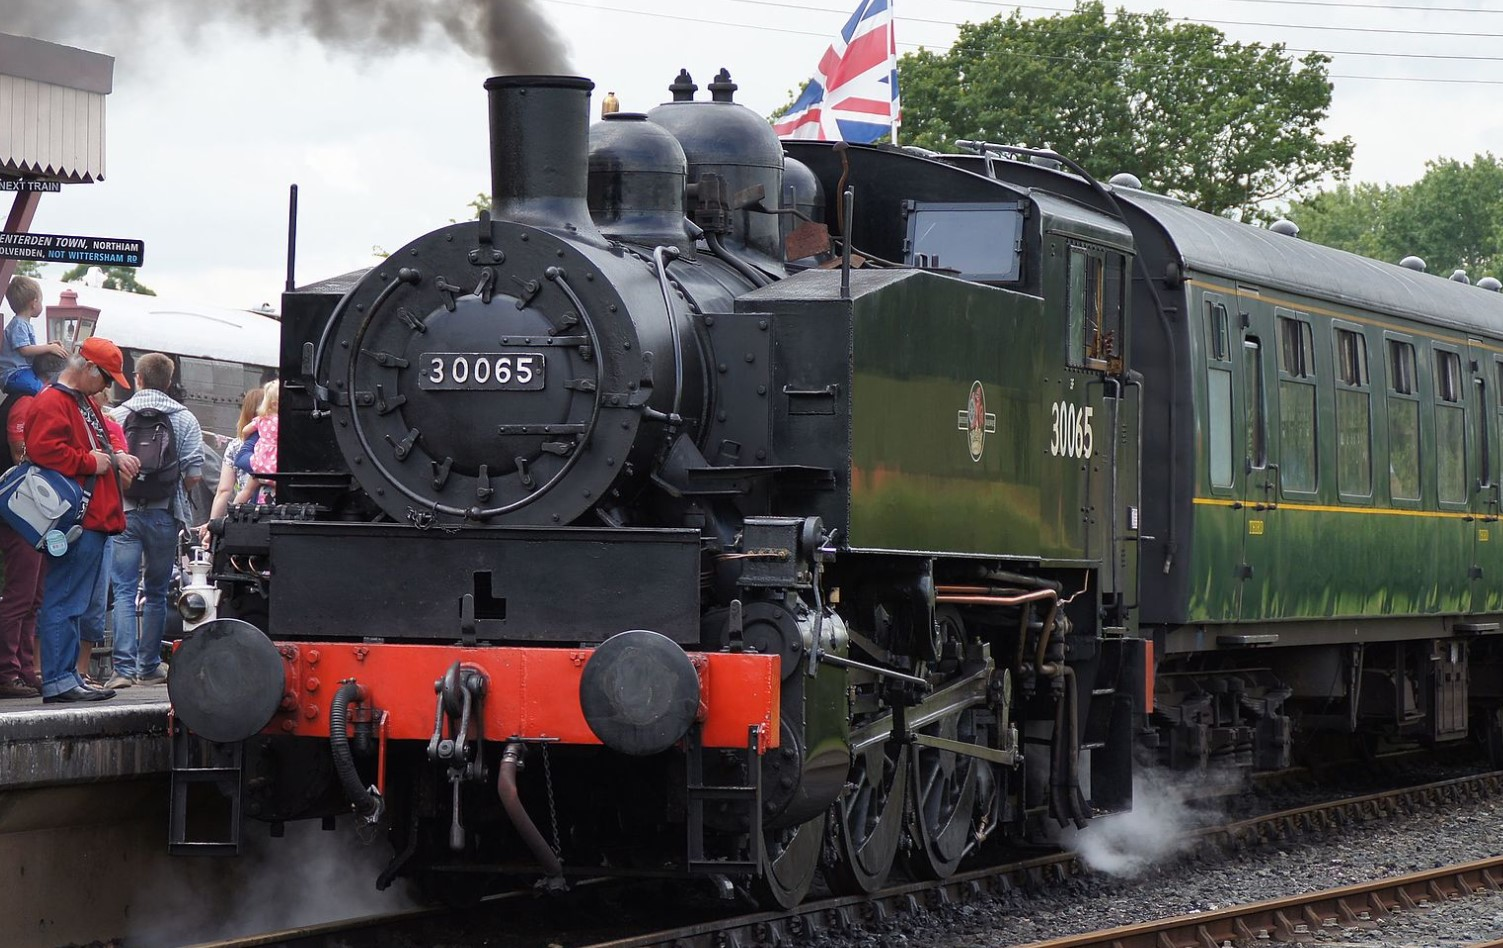 30065 at Bodiam on the Kent & South Essex Railway in July 2016. ©Markus Giger